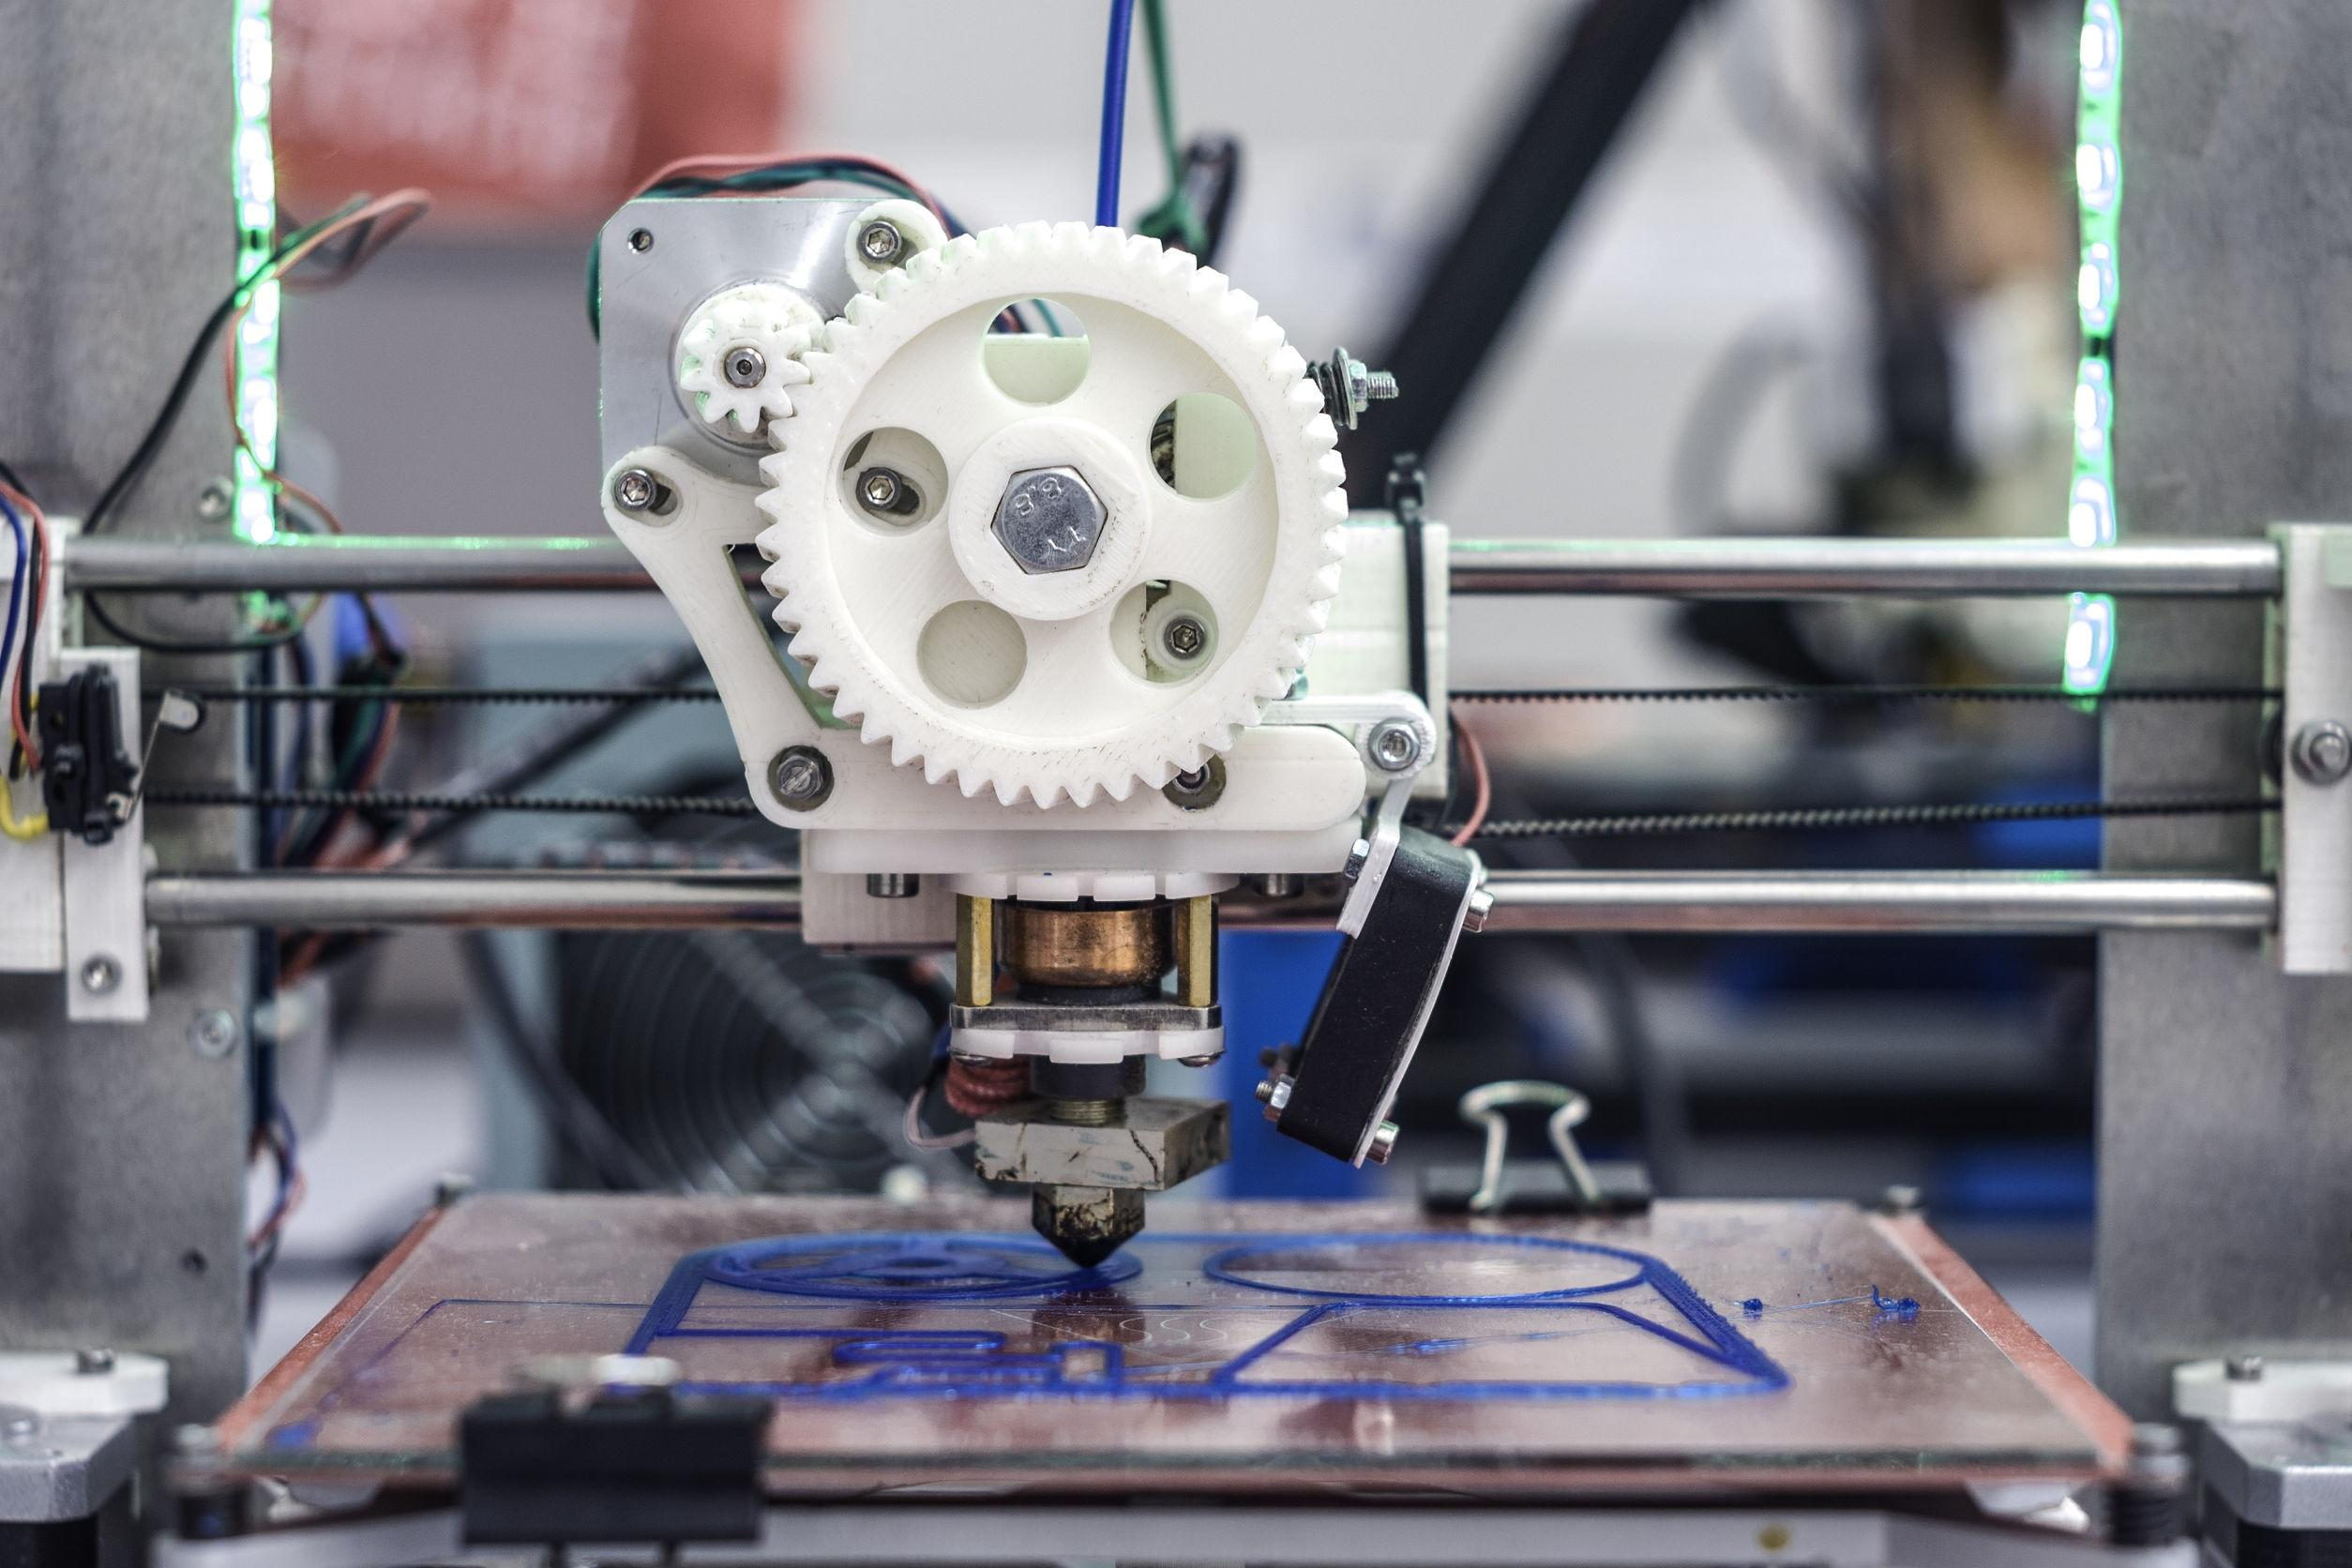 Could 3D printing be hazardous to your health? New study claims it might be